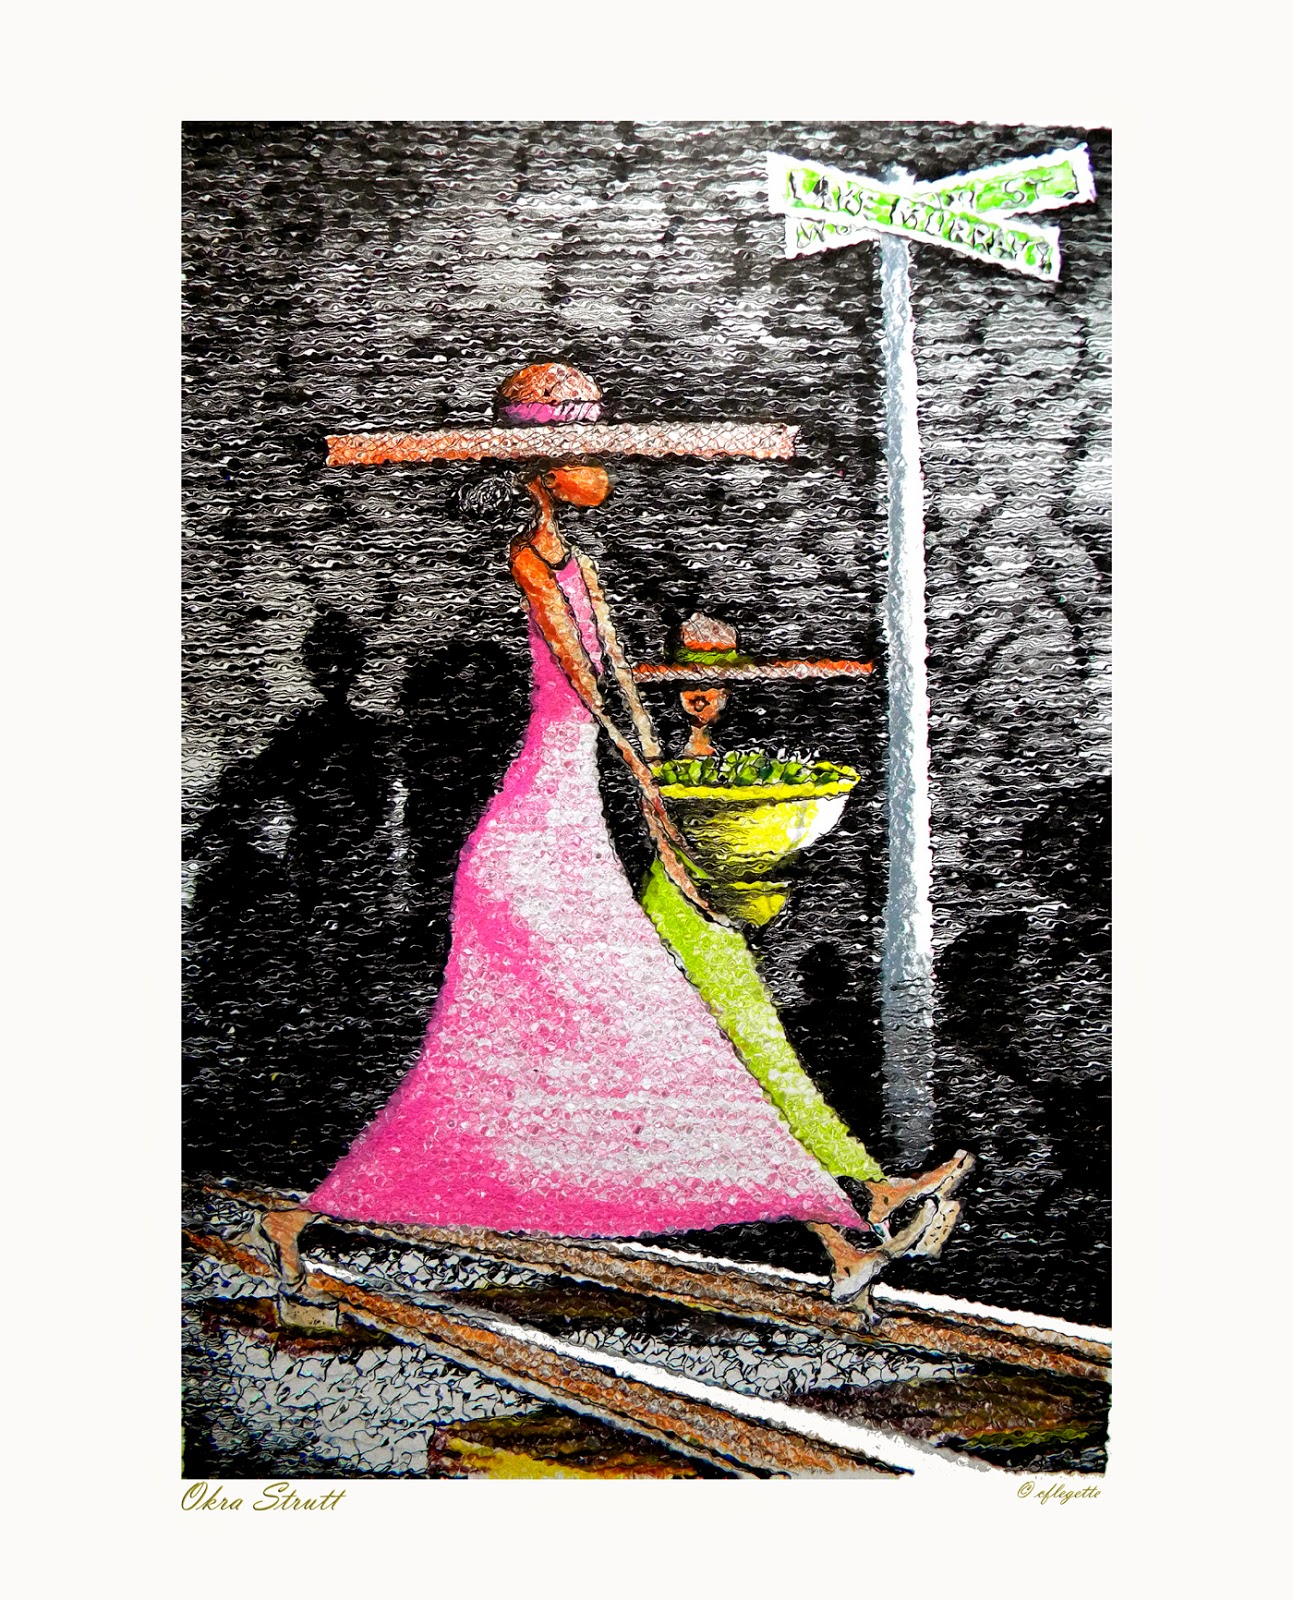 http://fineartamerica.com/featured/okra-strutt-c-f-legette.html?newartwork=true